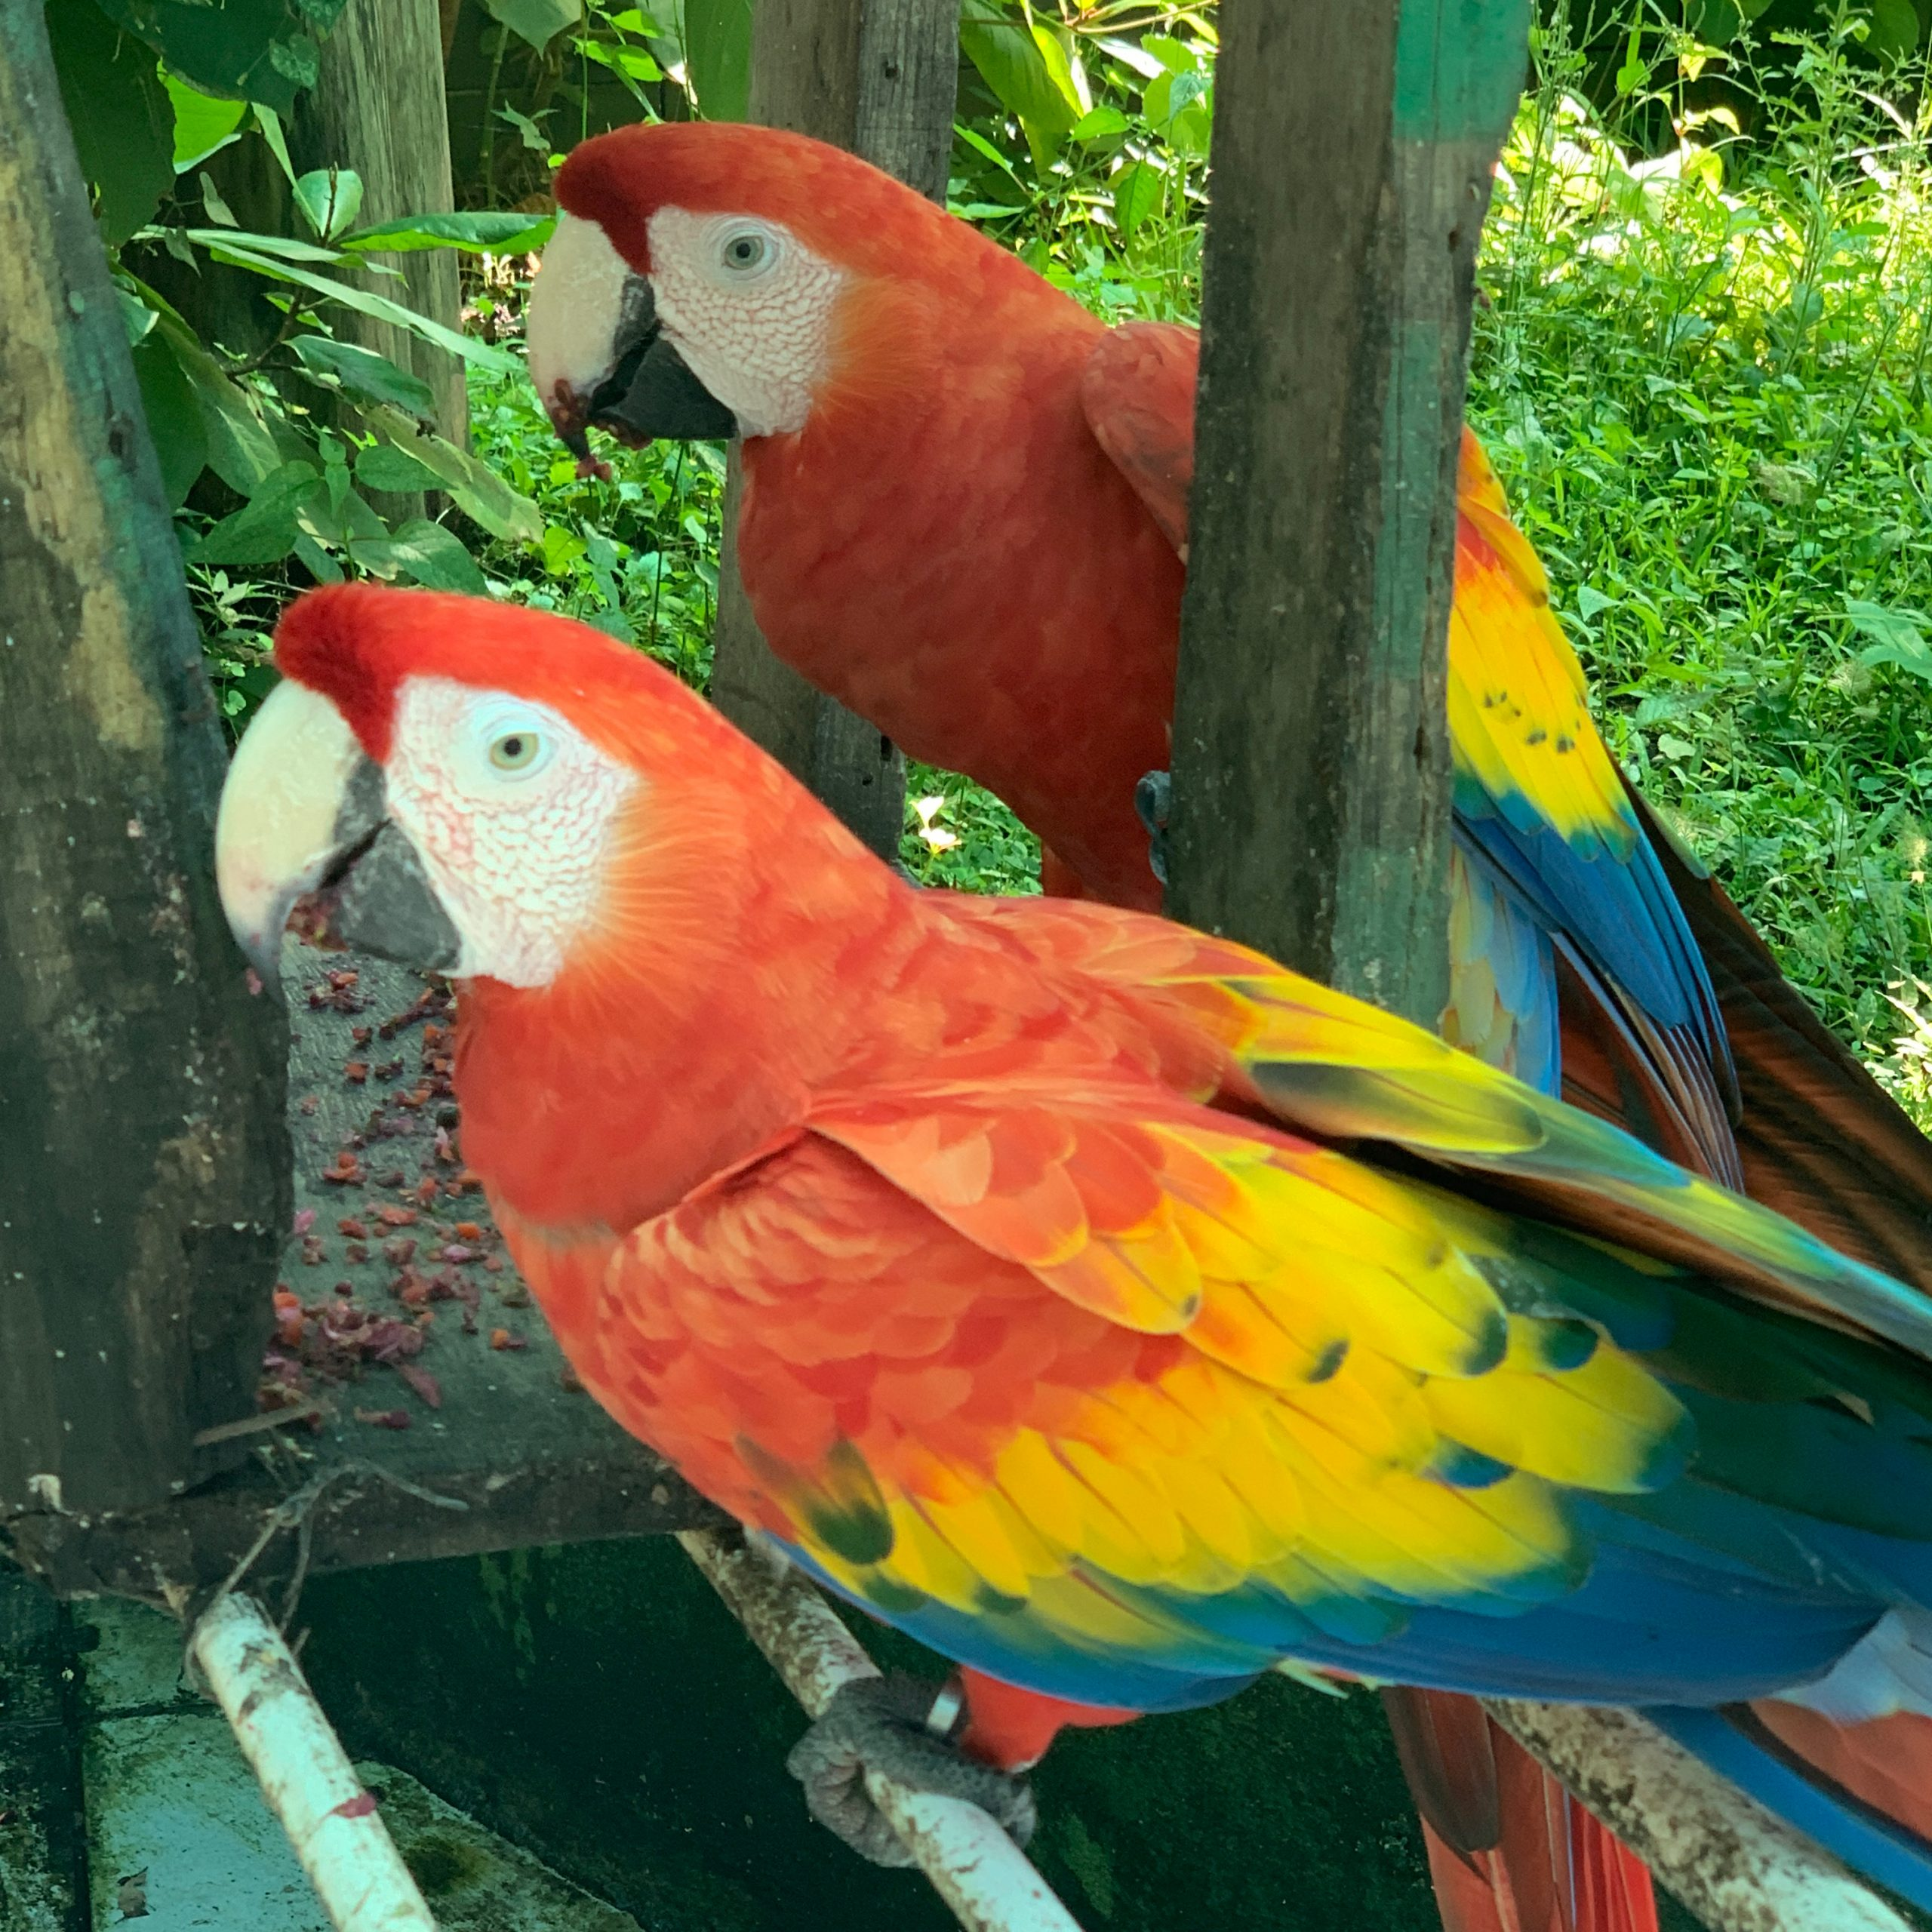 Ethically see animals in Costa Rica at Rescue Center Costa Rica | For Animals For Earth